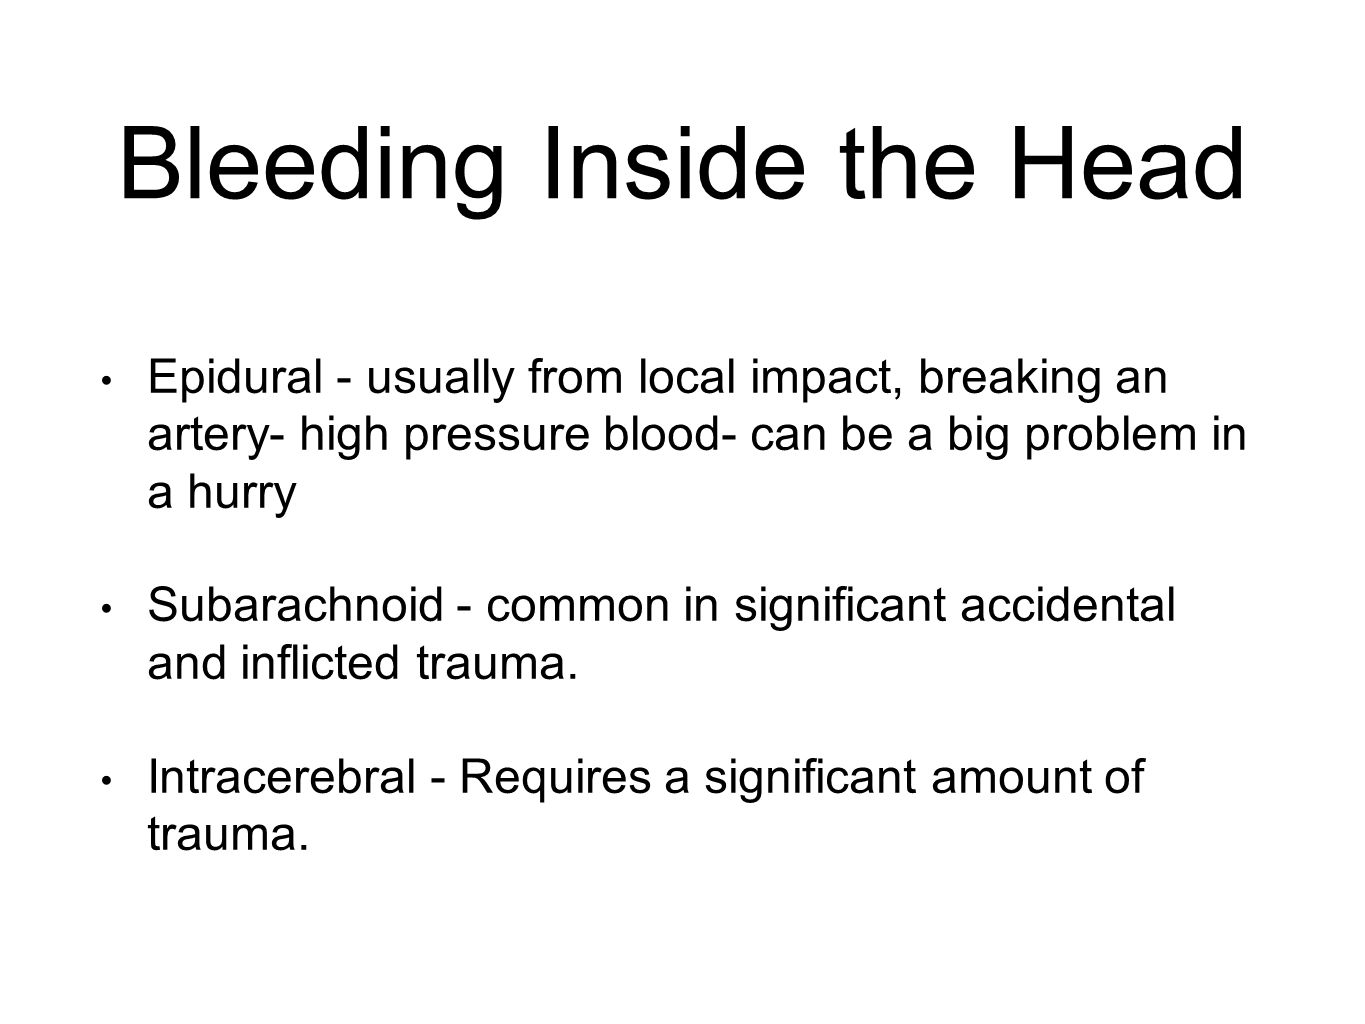 Bleeding Inside the Head Epidural - usually from local impact, breaking an artery- high pressure blood- can be a big problem in a hurry Subarachnoid - common in significant accidental and inflicted trauma.